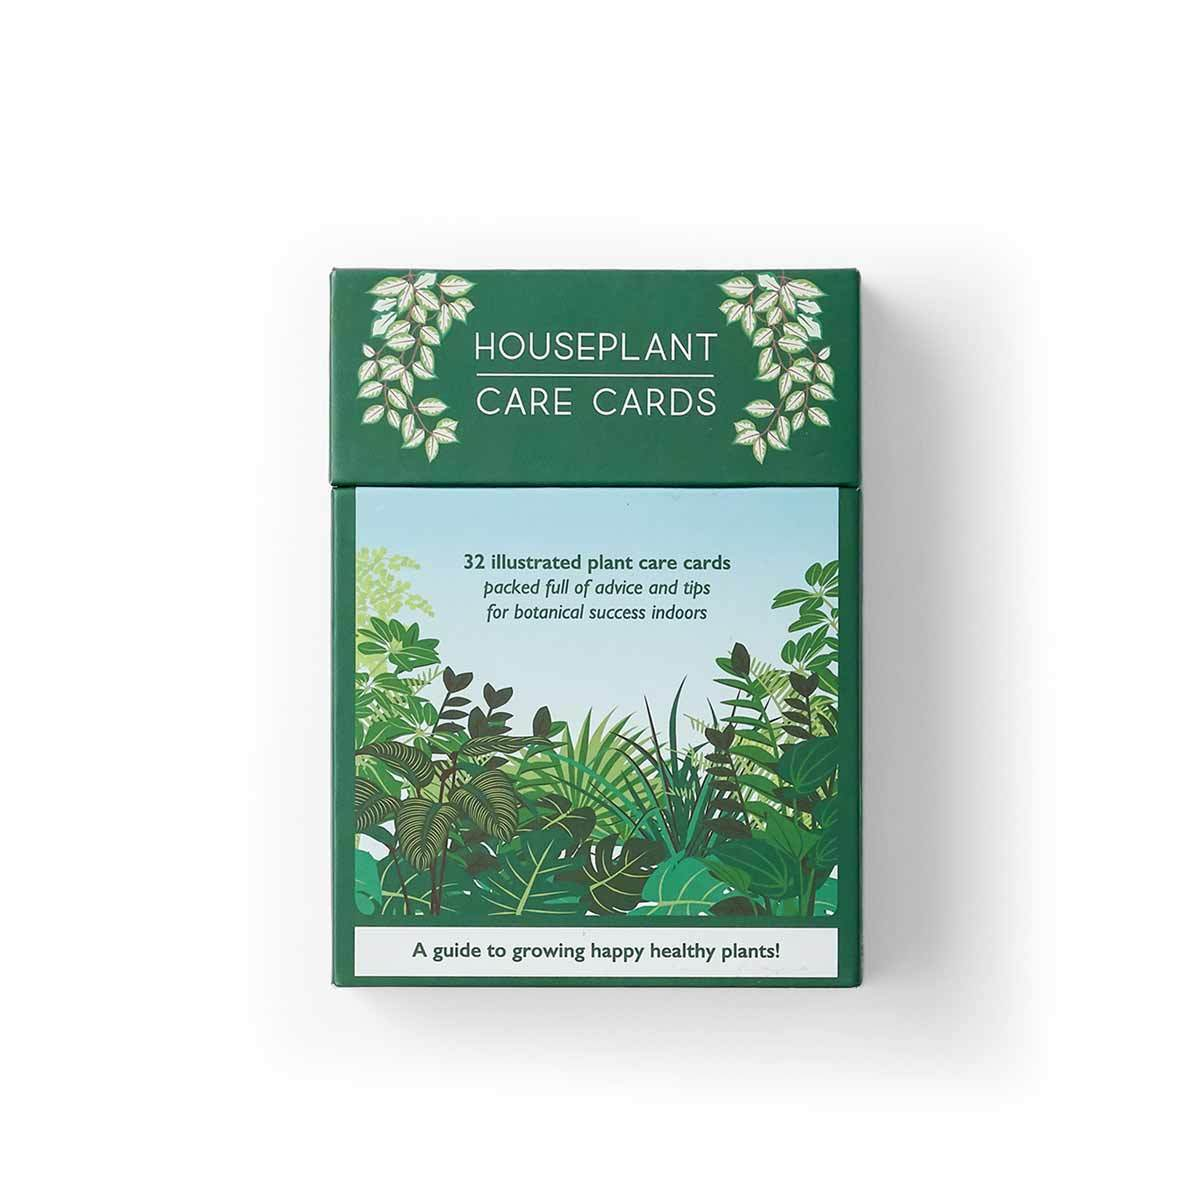 These houseplant care cards are perfect for a plant enthusiast. Why not gift them to a loved one or treat yourself! Click to view the entire collection of gifts at Eclectic Hound.